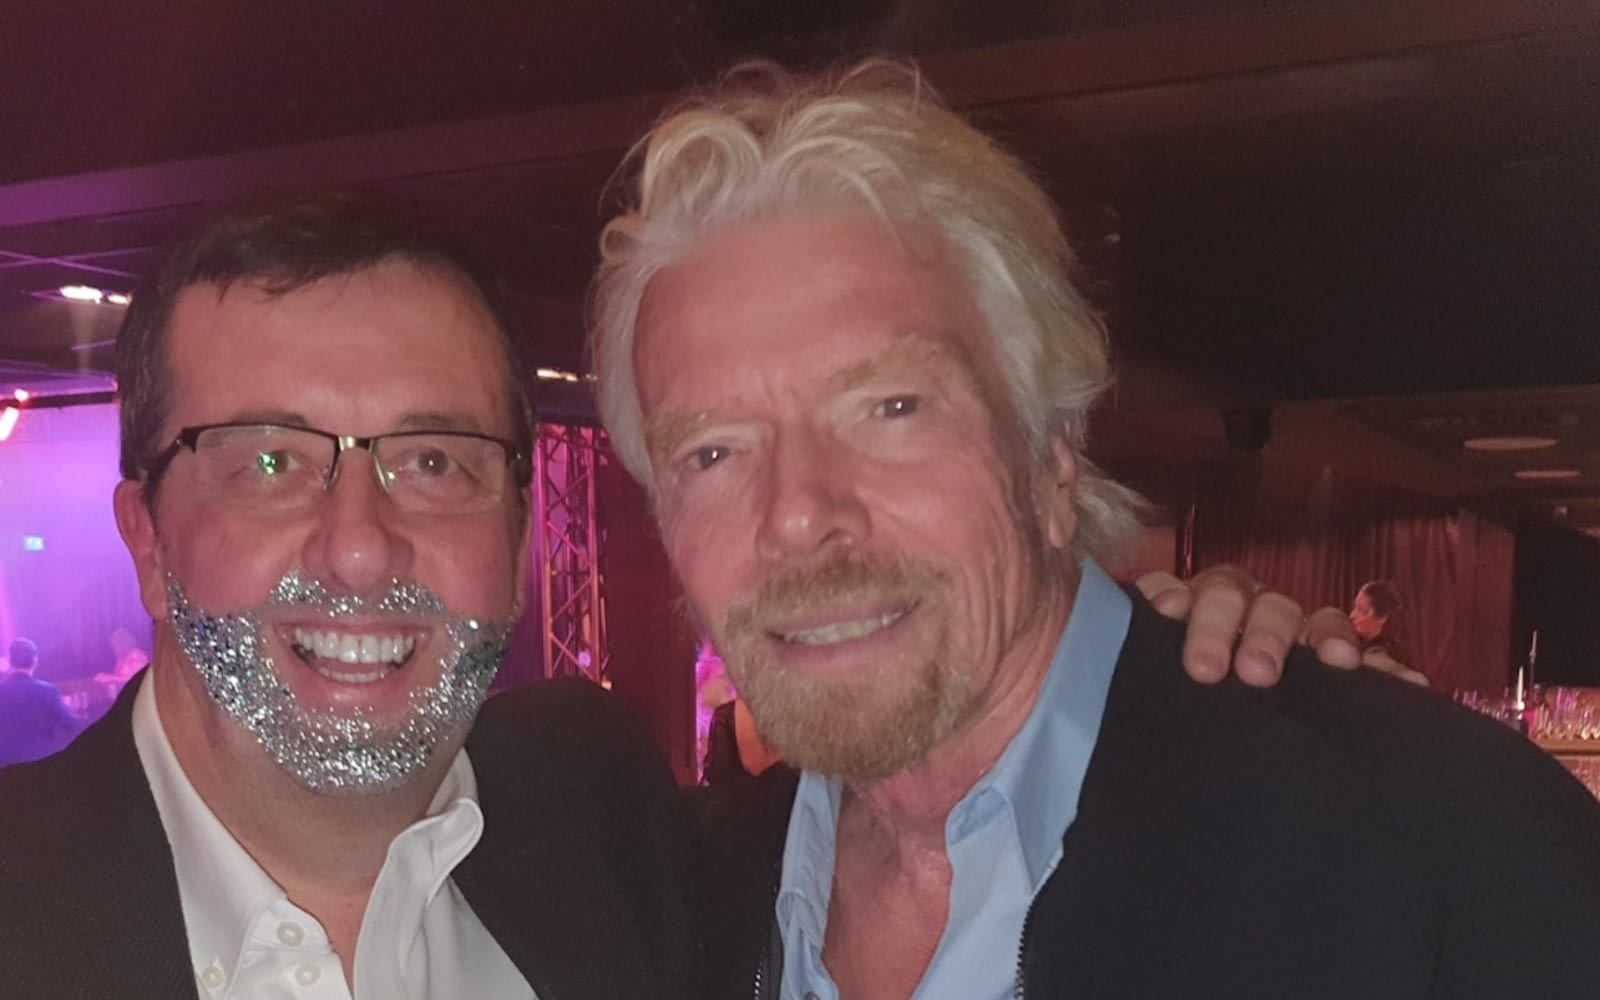 Richard Branson and Darren Jones wearing a glitter beard at Virgin Stars event